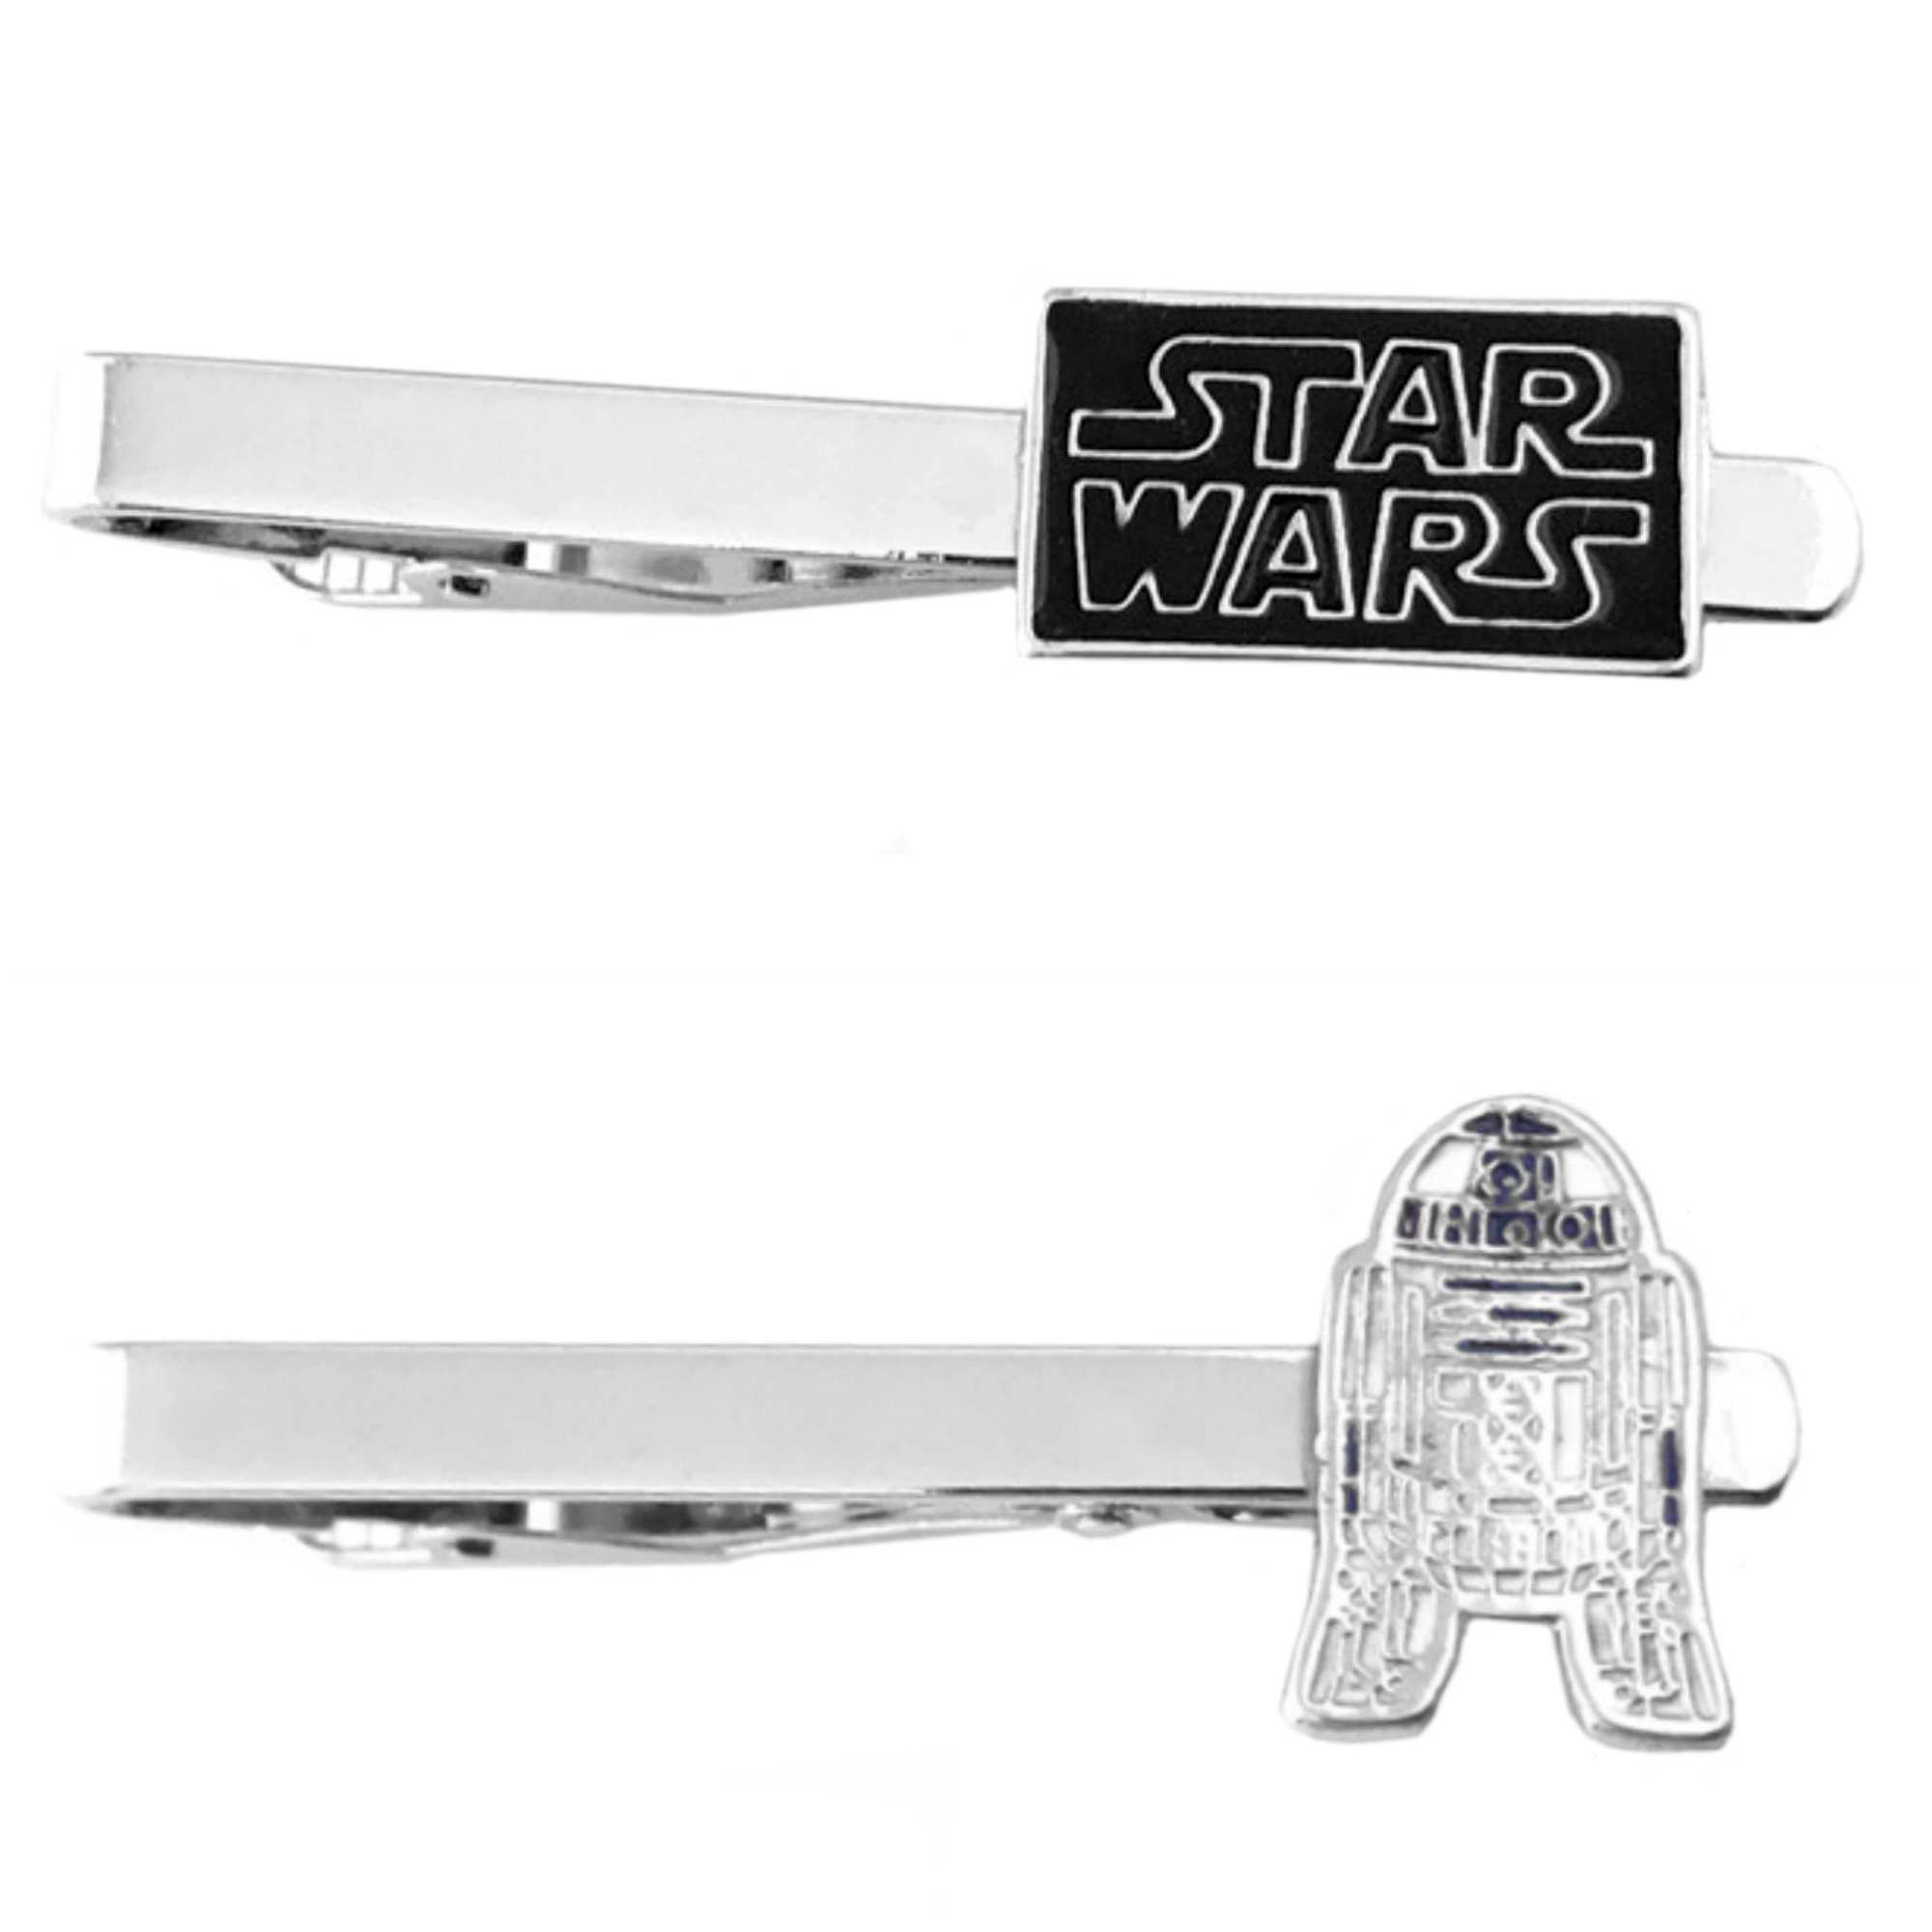 Outlander Star Wars - Text & R2-D2 Flat - Tiebar Tie Clasp Set of 2 Wedding Superhero Logo w/Gift Box